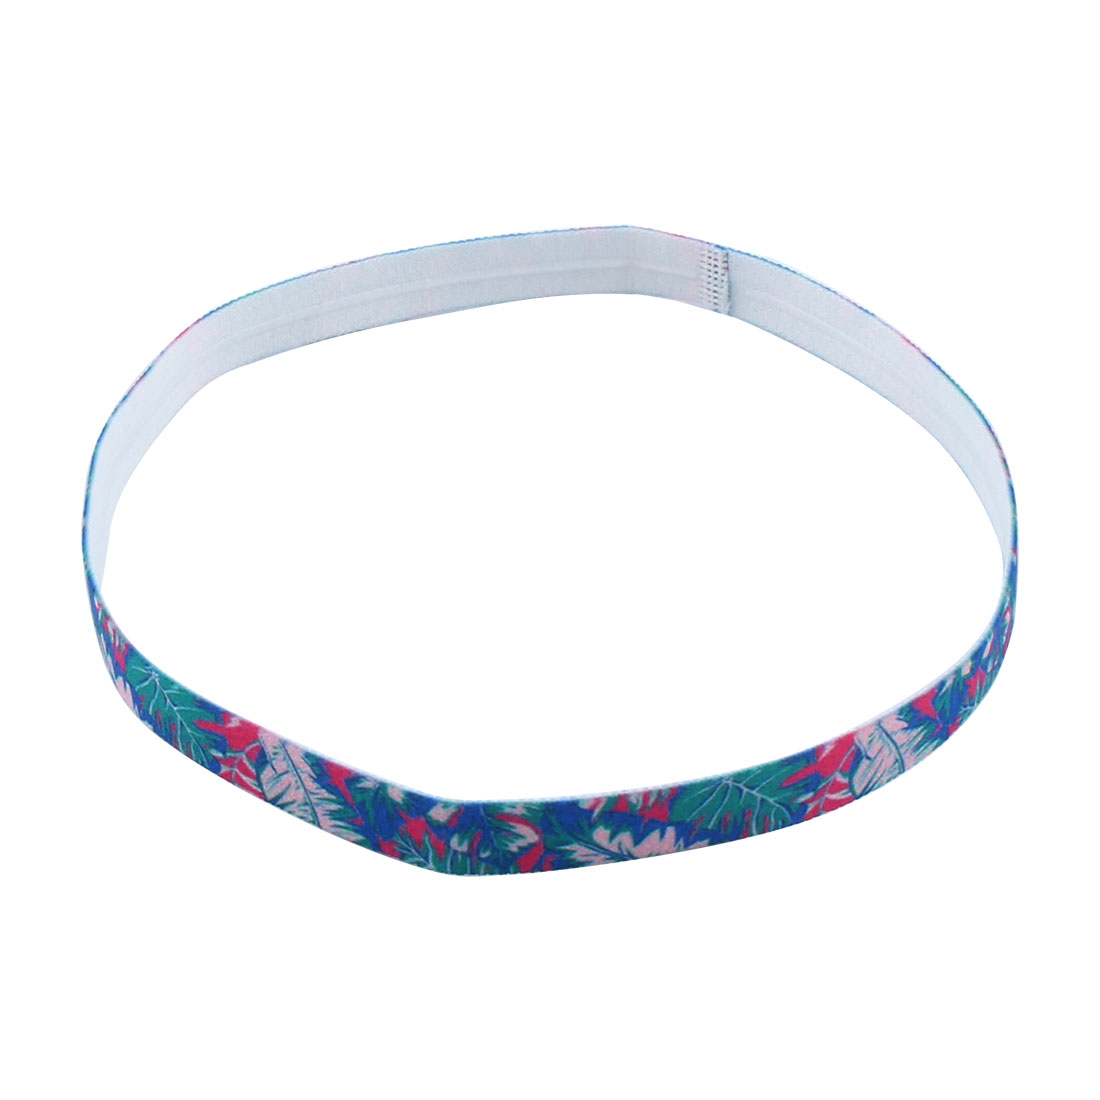 Training Silicone Flower Printed Non-slip Strech Sports Headband #1